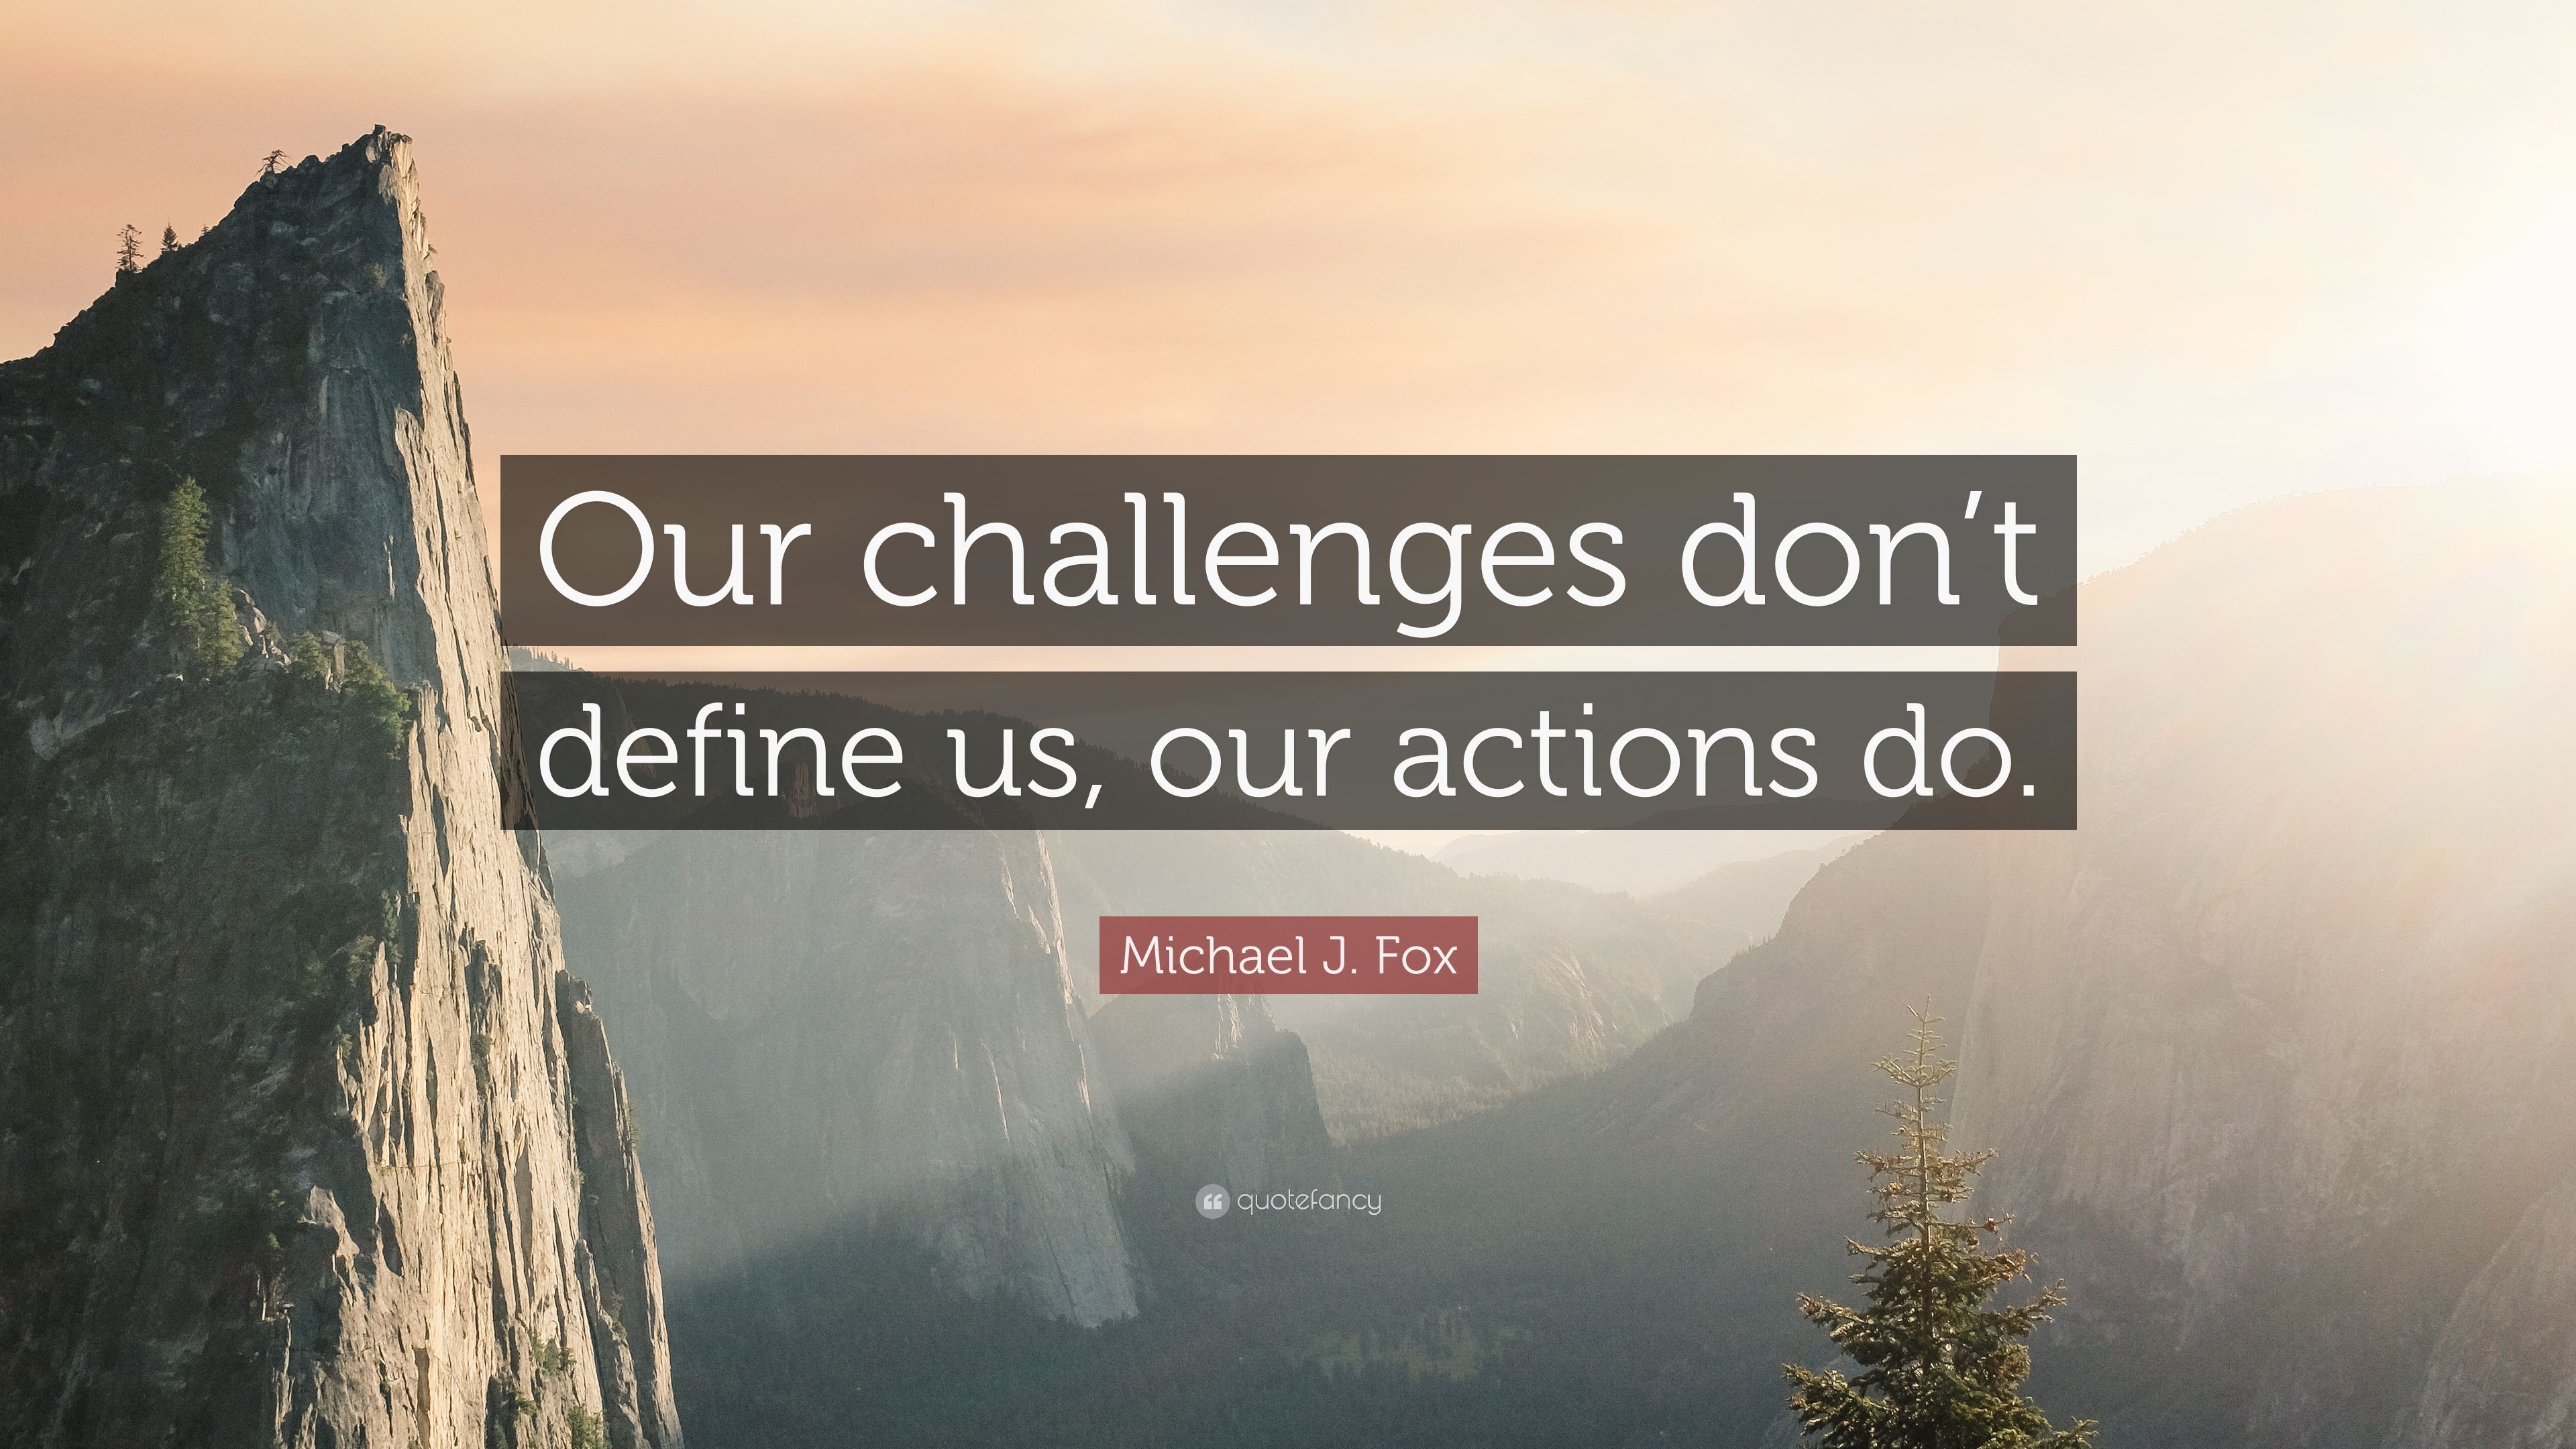 Steve Jobs Wallpaper Quotes Michael J Fox Quote Our Challenges Don T Define Us Our